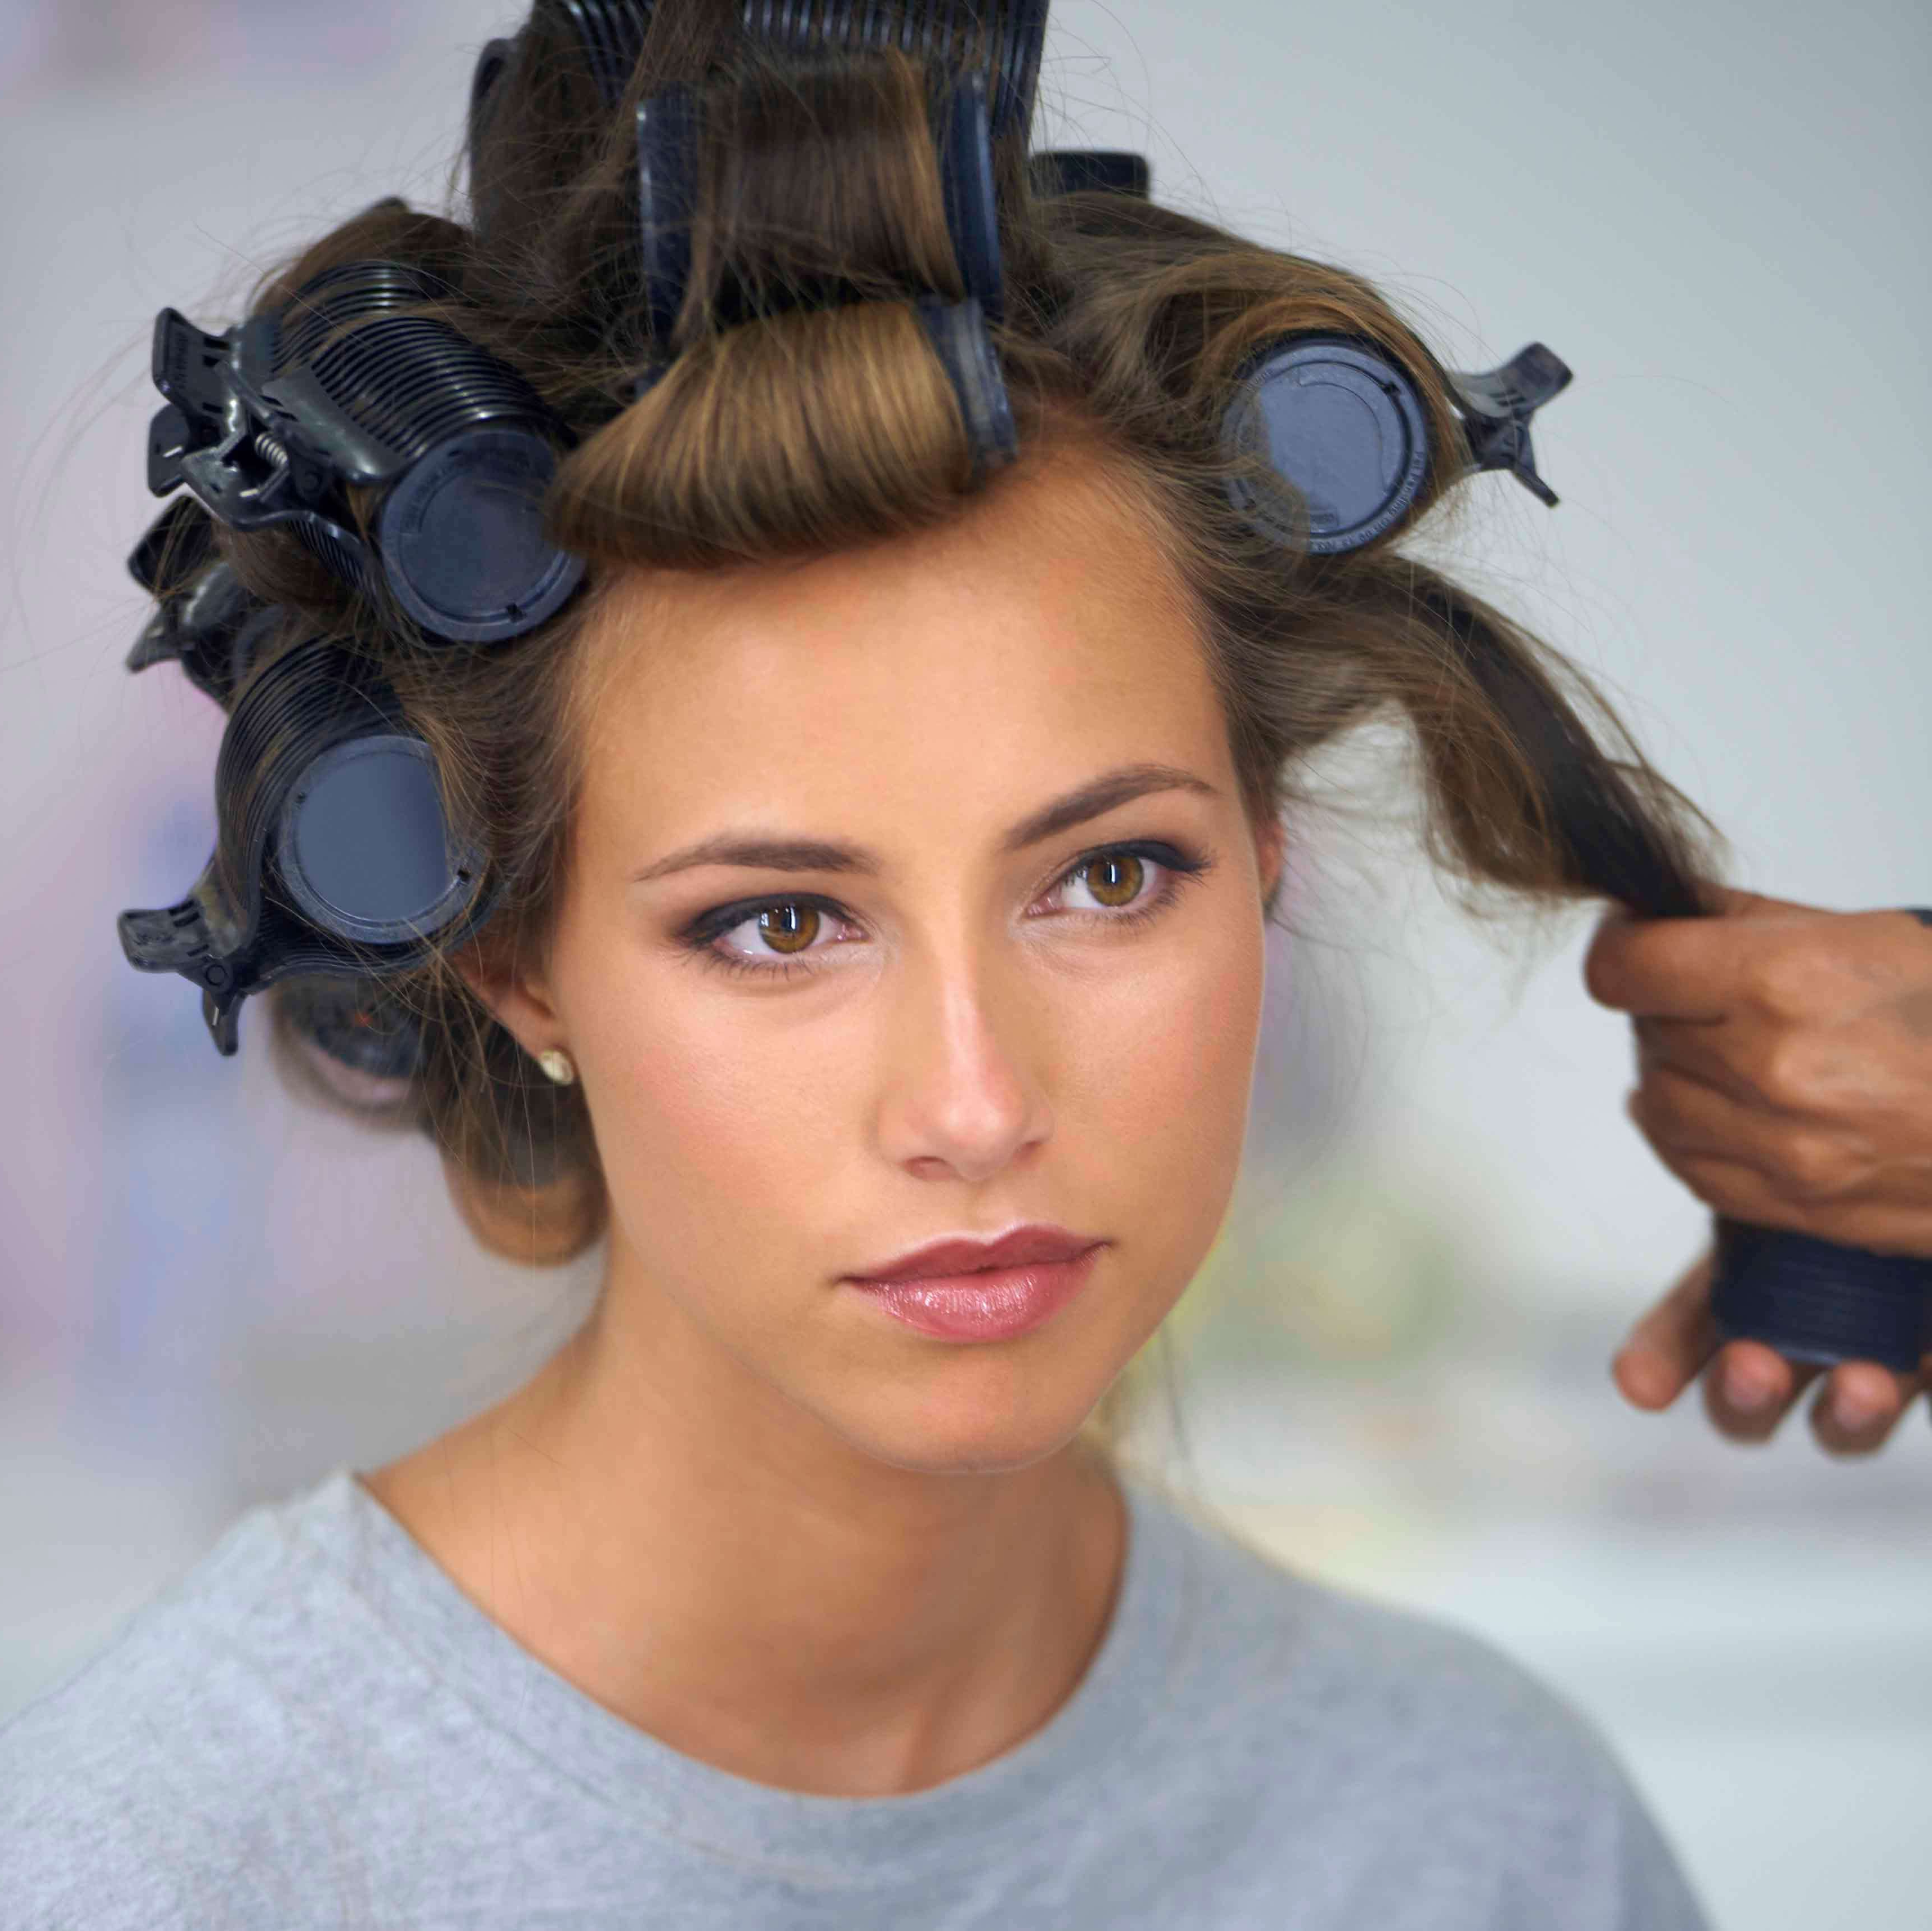 Most Recent Large Hair Rollers Bridal Hairstyles Within How To Use Hot Rollers: A Step By Step Guide (View 3 of 20)